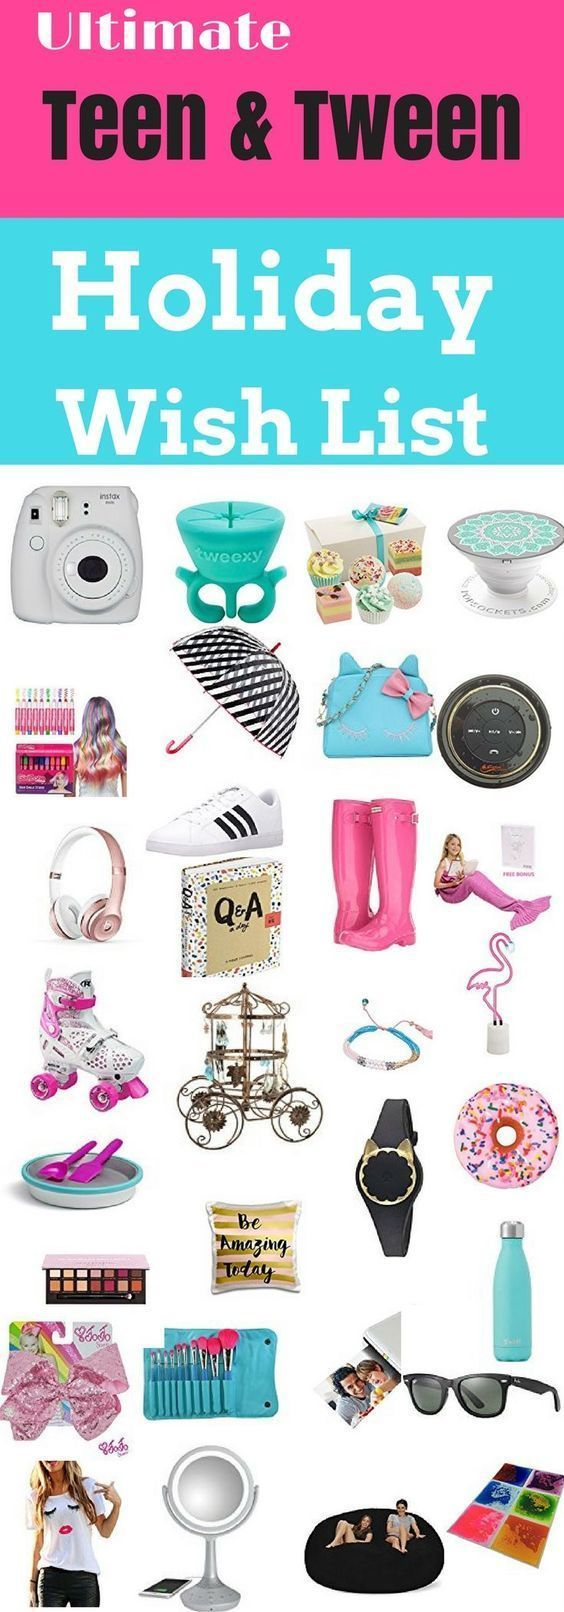 Toys For Girls Age 16 : Best top toys girls age images on pinterest gift